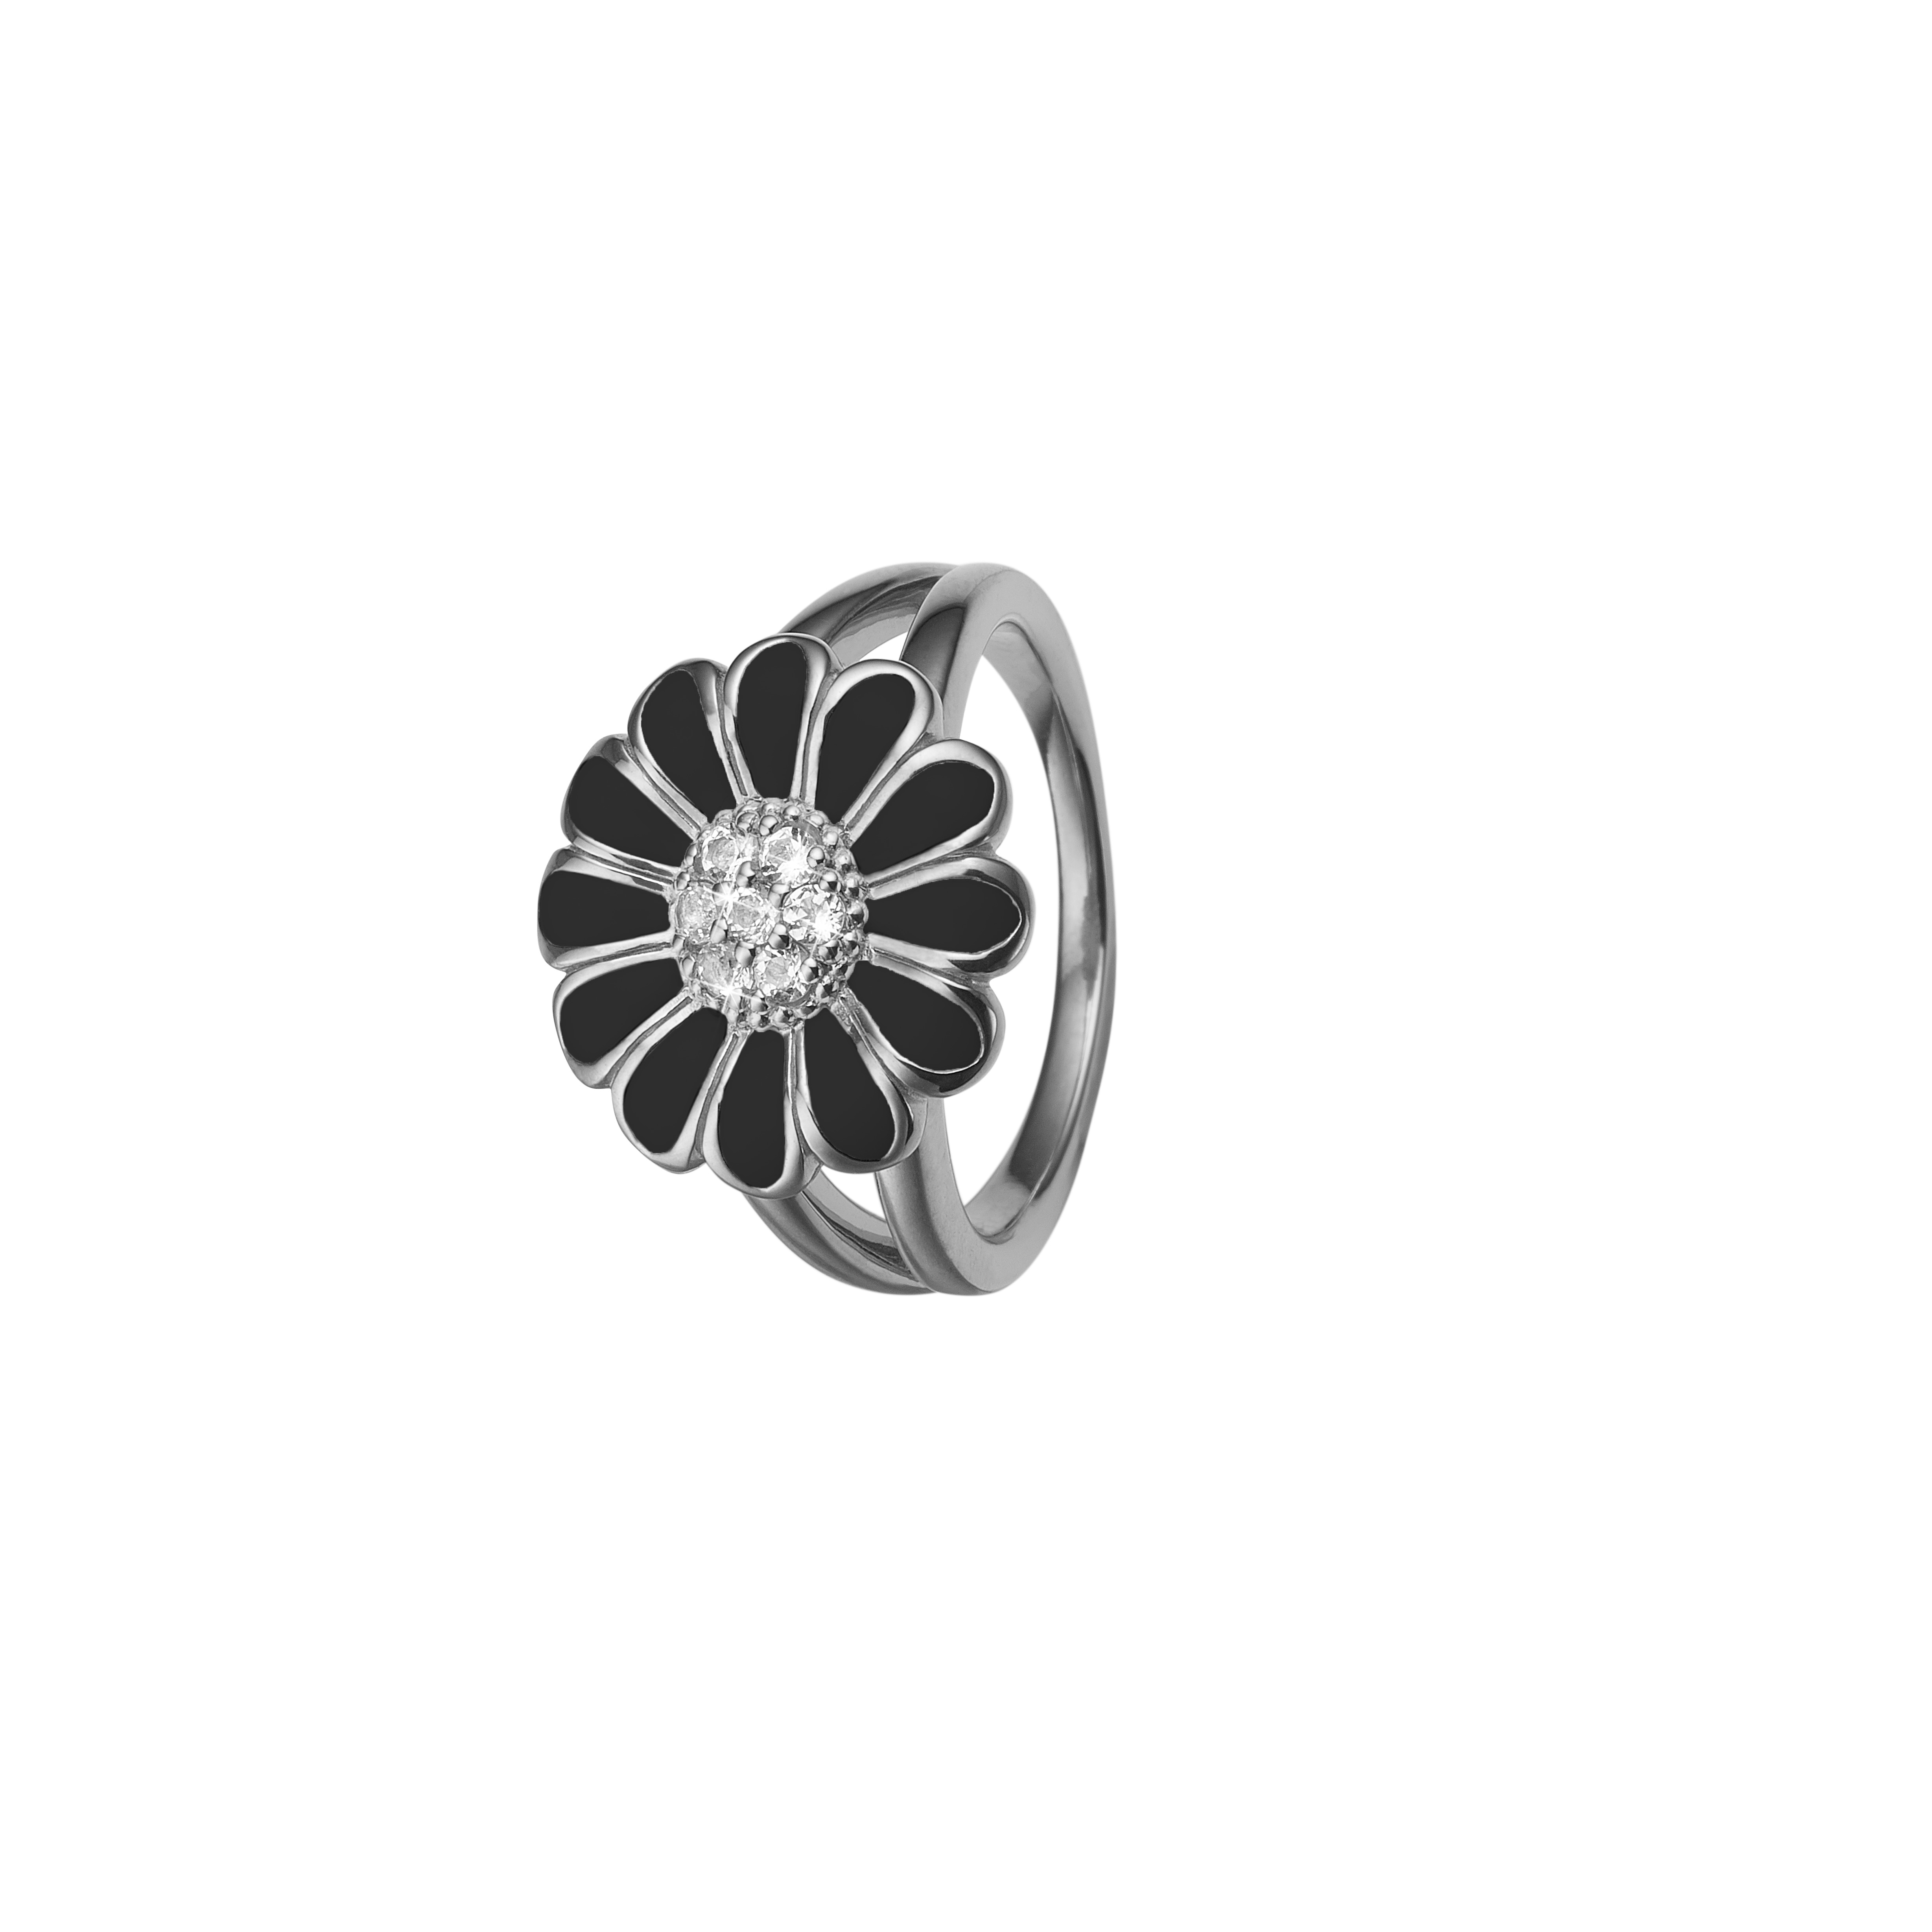 CHRISTINA Black Marguerit ring 16 mm - 4.5A Størrelse 51